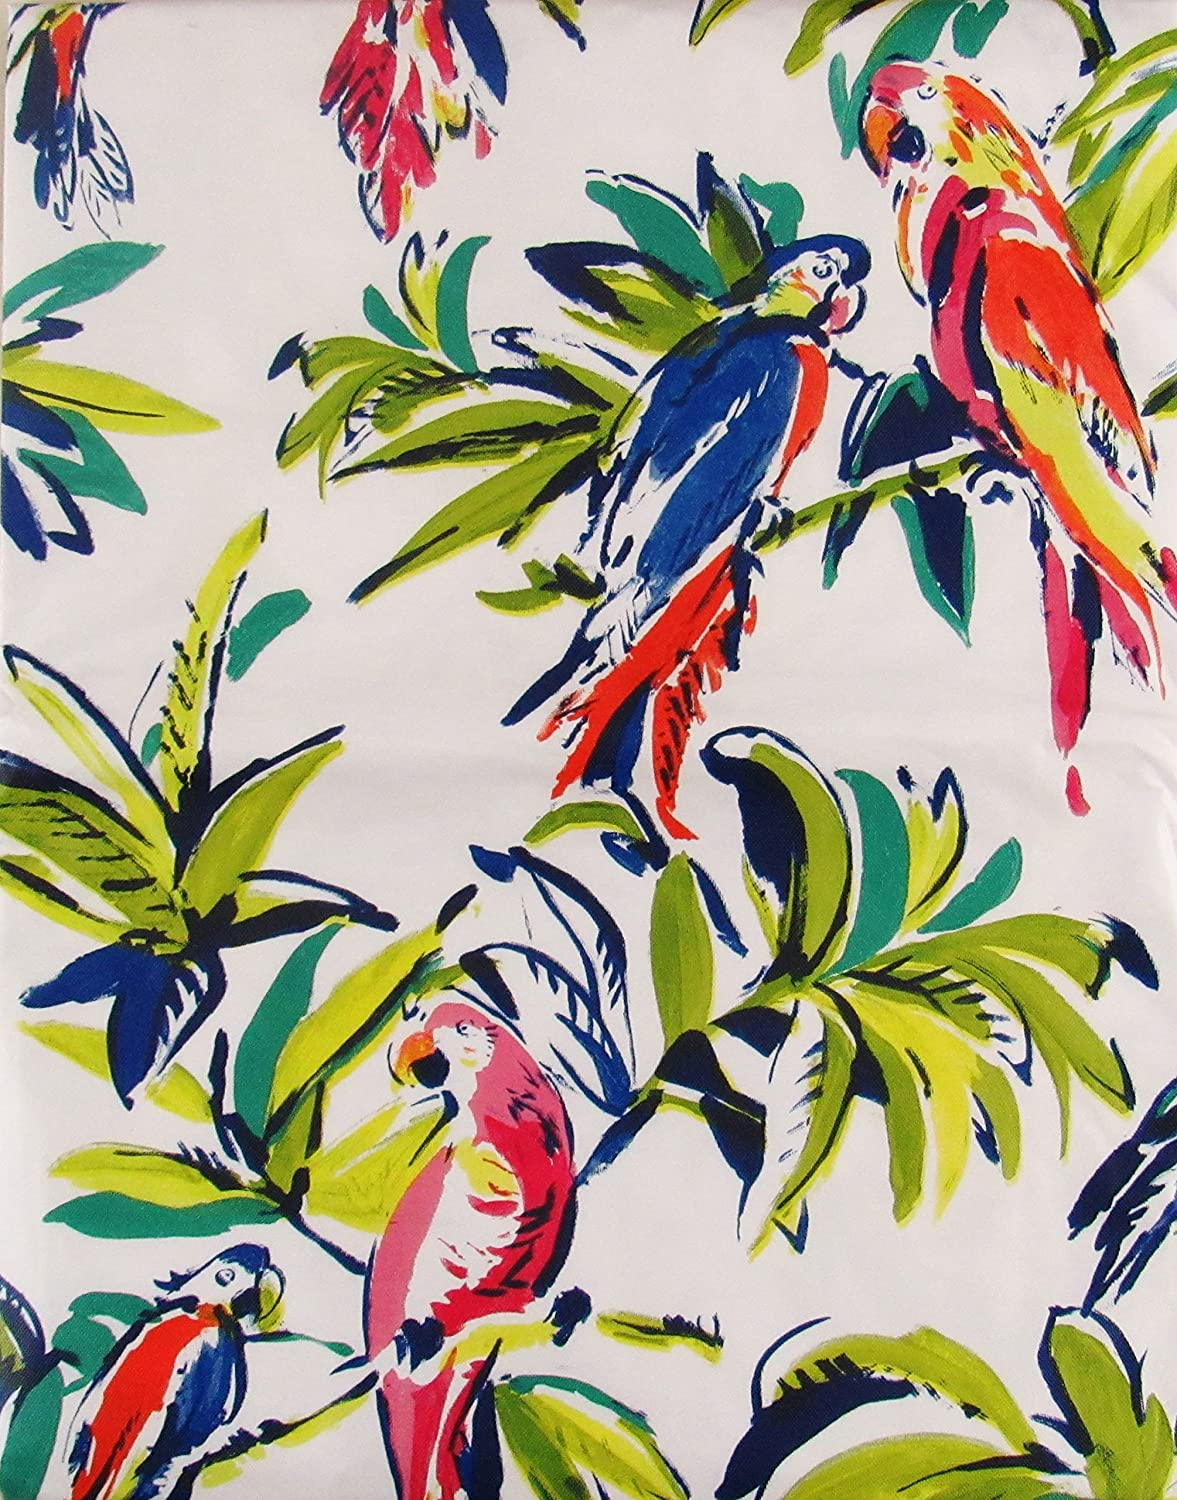 Watercolor Parrots in Tropical Paradise Abstract Vinyl Flannel Back Tablecloth 52 x 52 Square Elrene Home Fashions